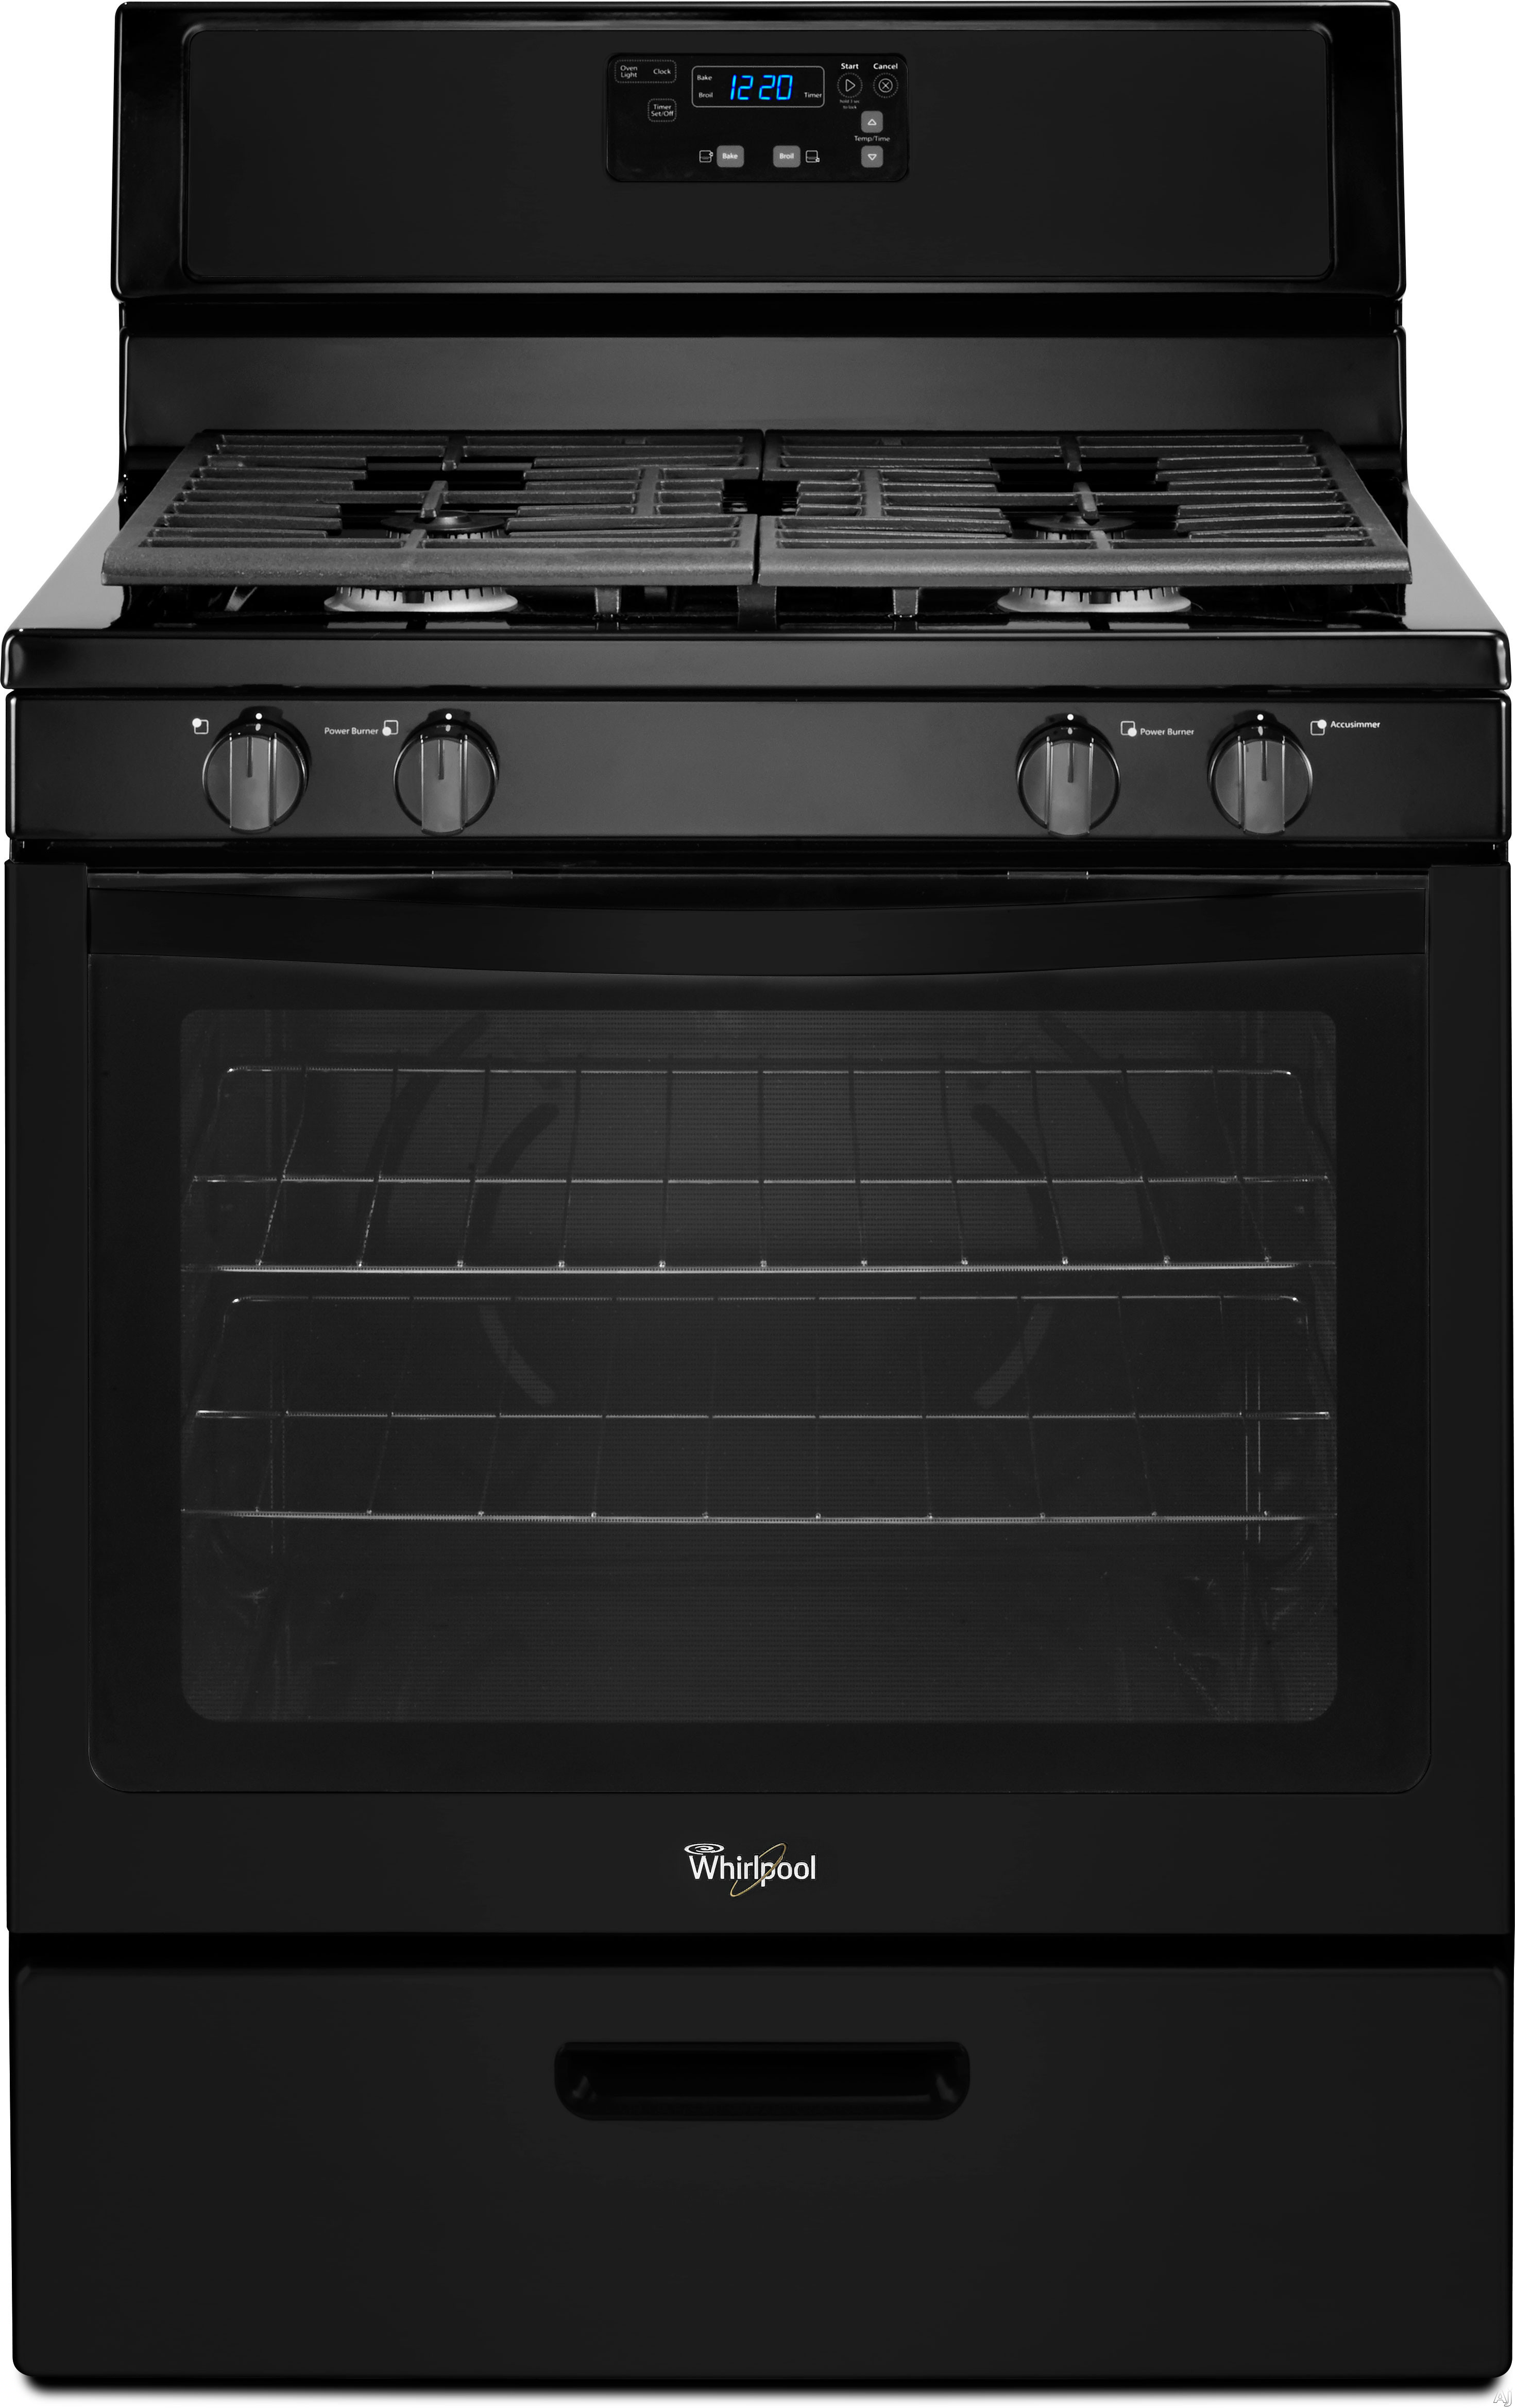 Whirlpool Countertop Stove Parts : Whirlpool WFG320M0BB 30 Inch Freestanding Gas Range with 4 Sealed ...